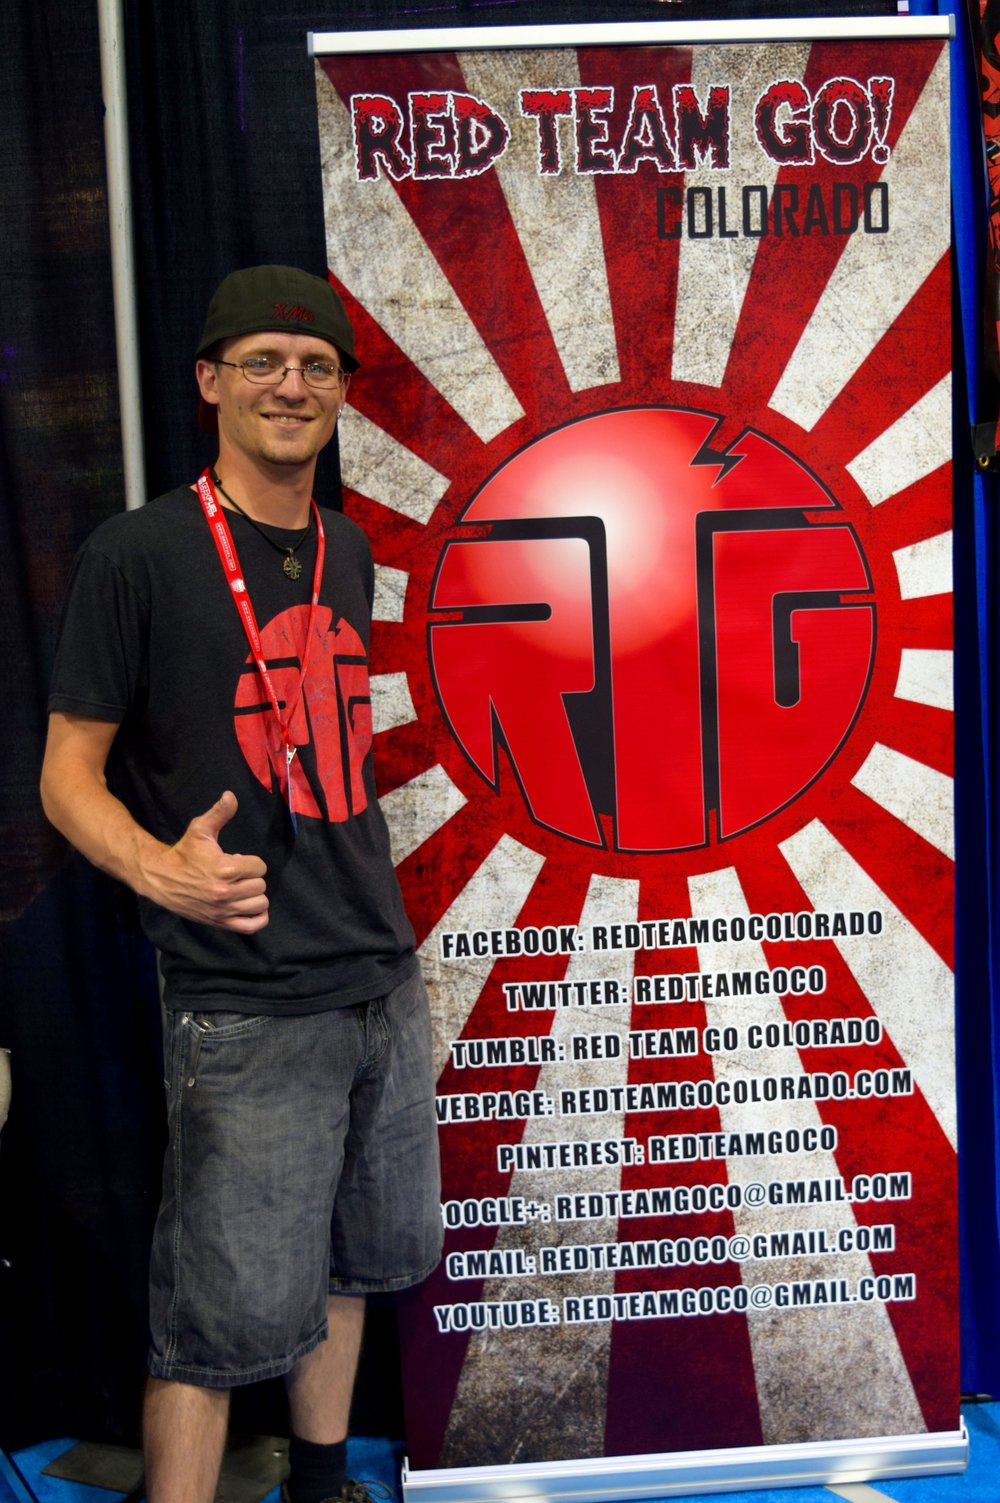 Colton Muheim with the RTG banner at Denver Comic Con 2016.